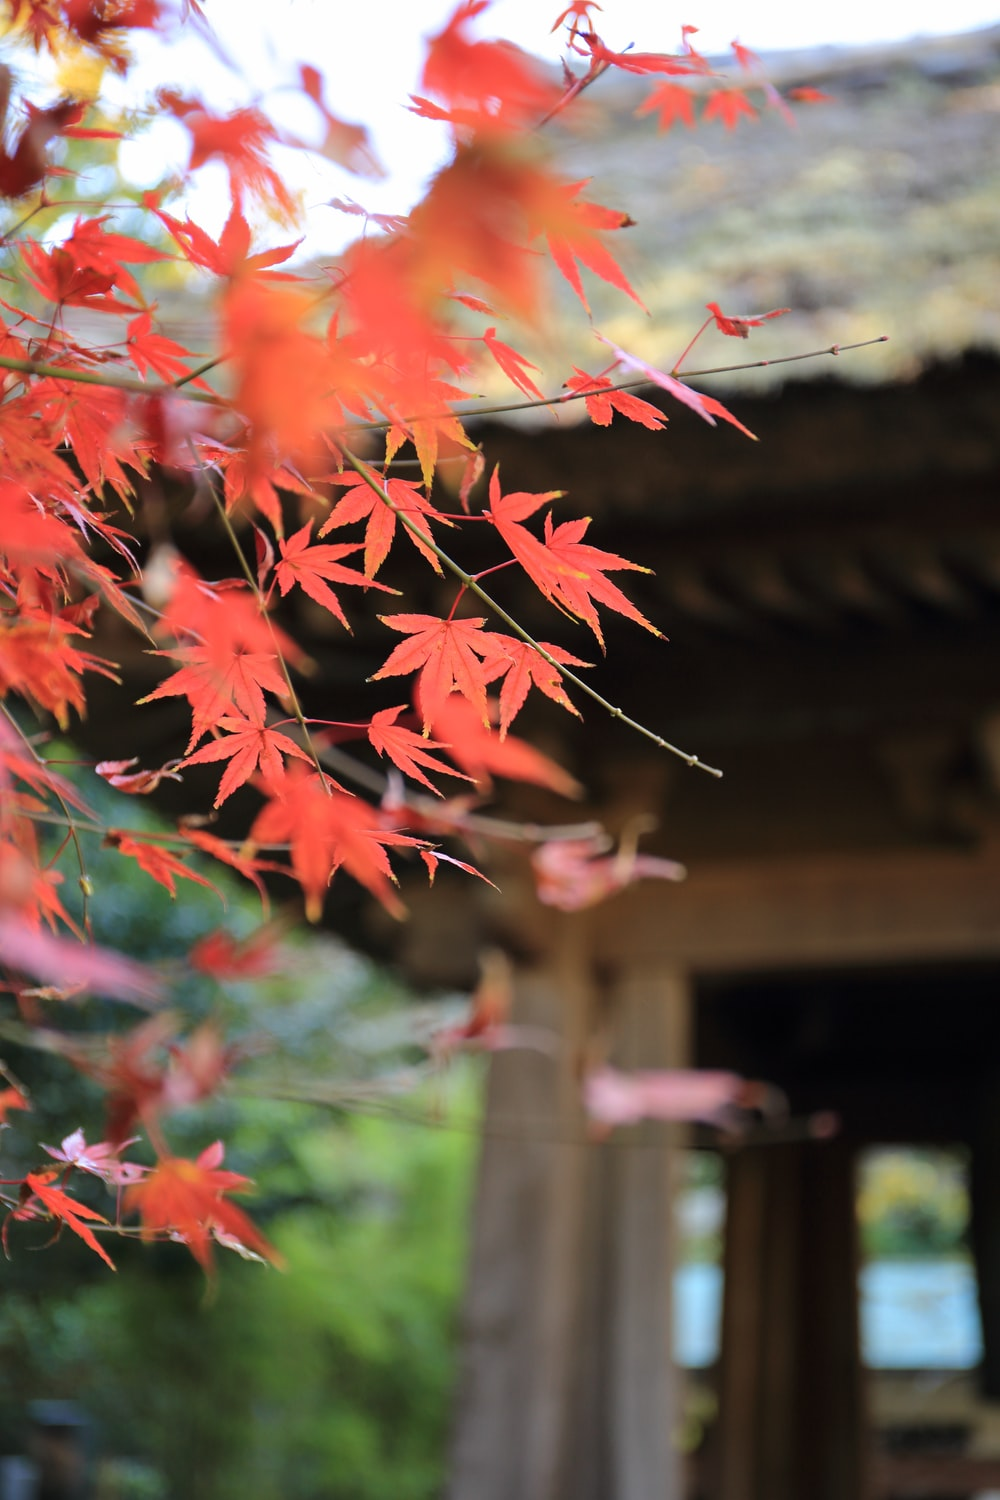 shallow focus photo of red leaves